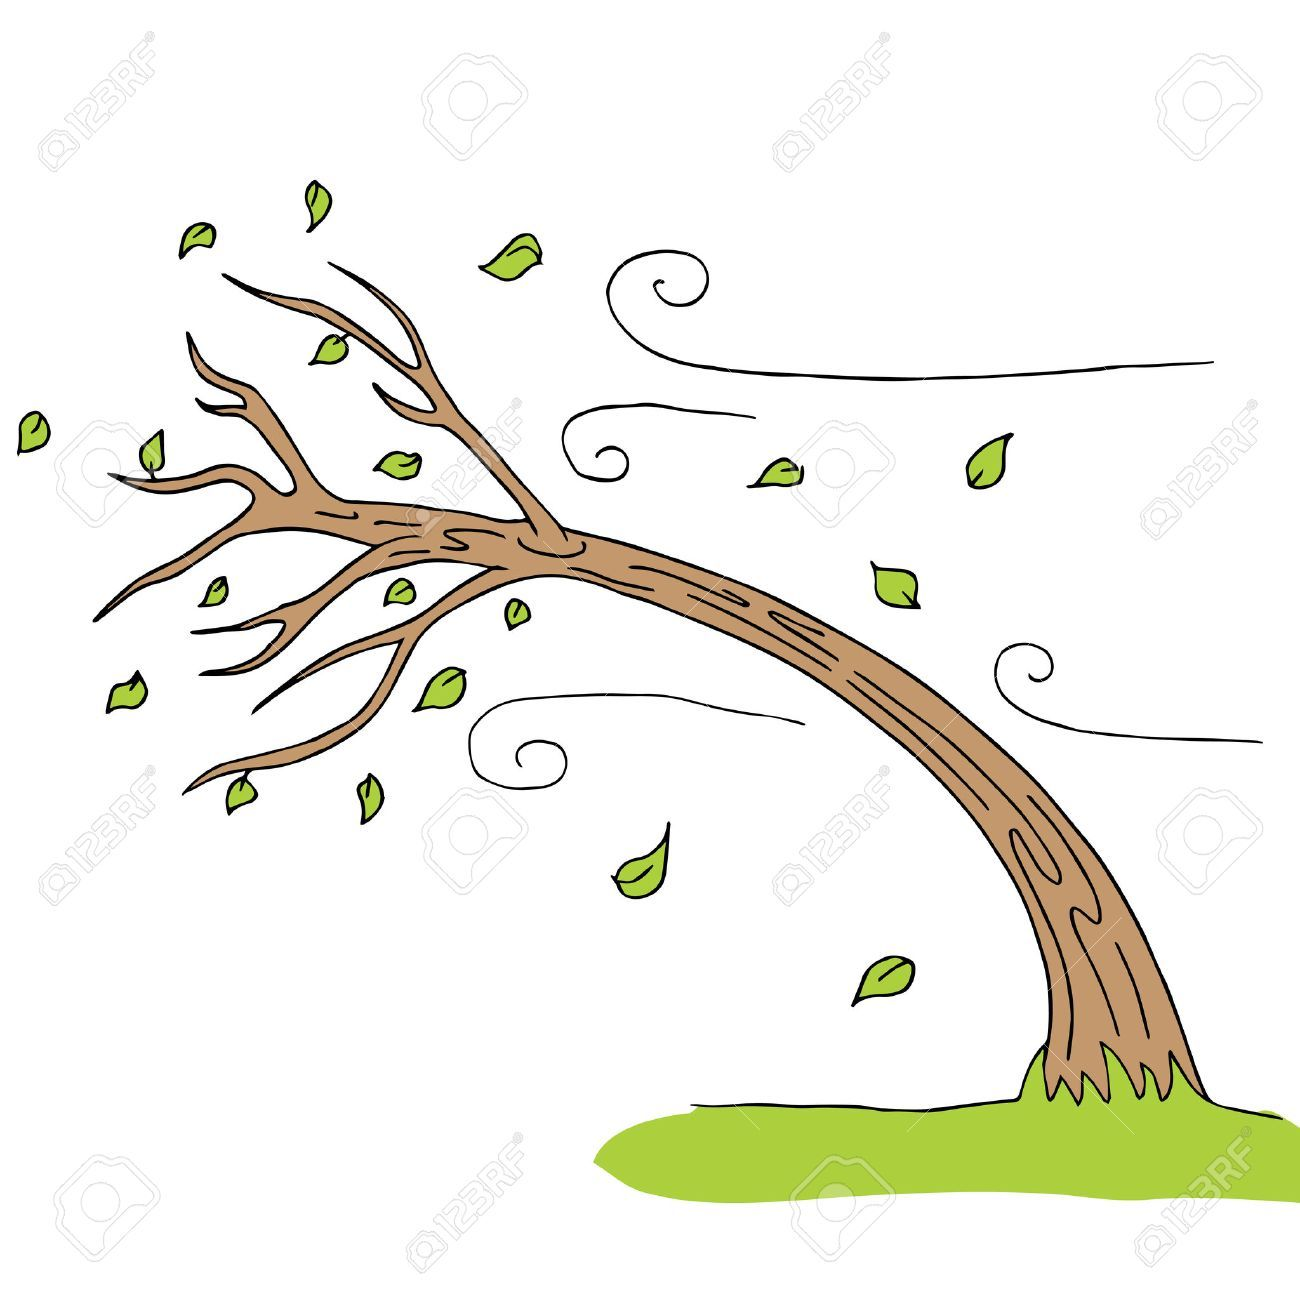 Wind blowing leaves clipart transparent download Wind blowing leaves clipart 5 » Clipart Portal transparent download